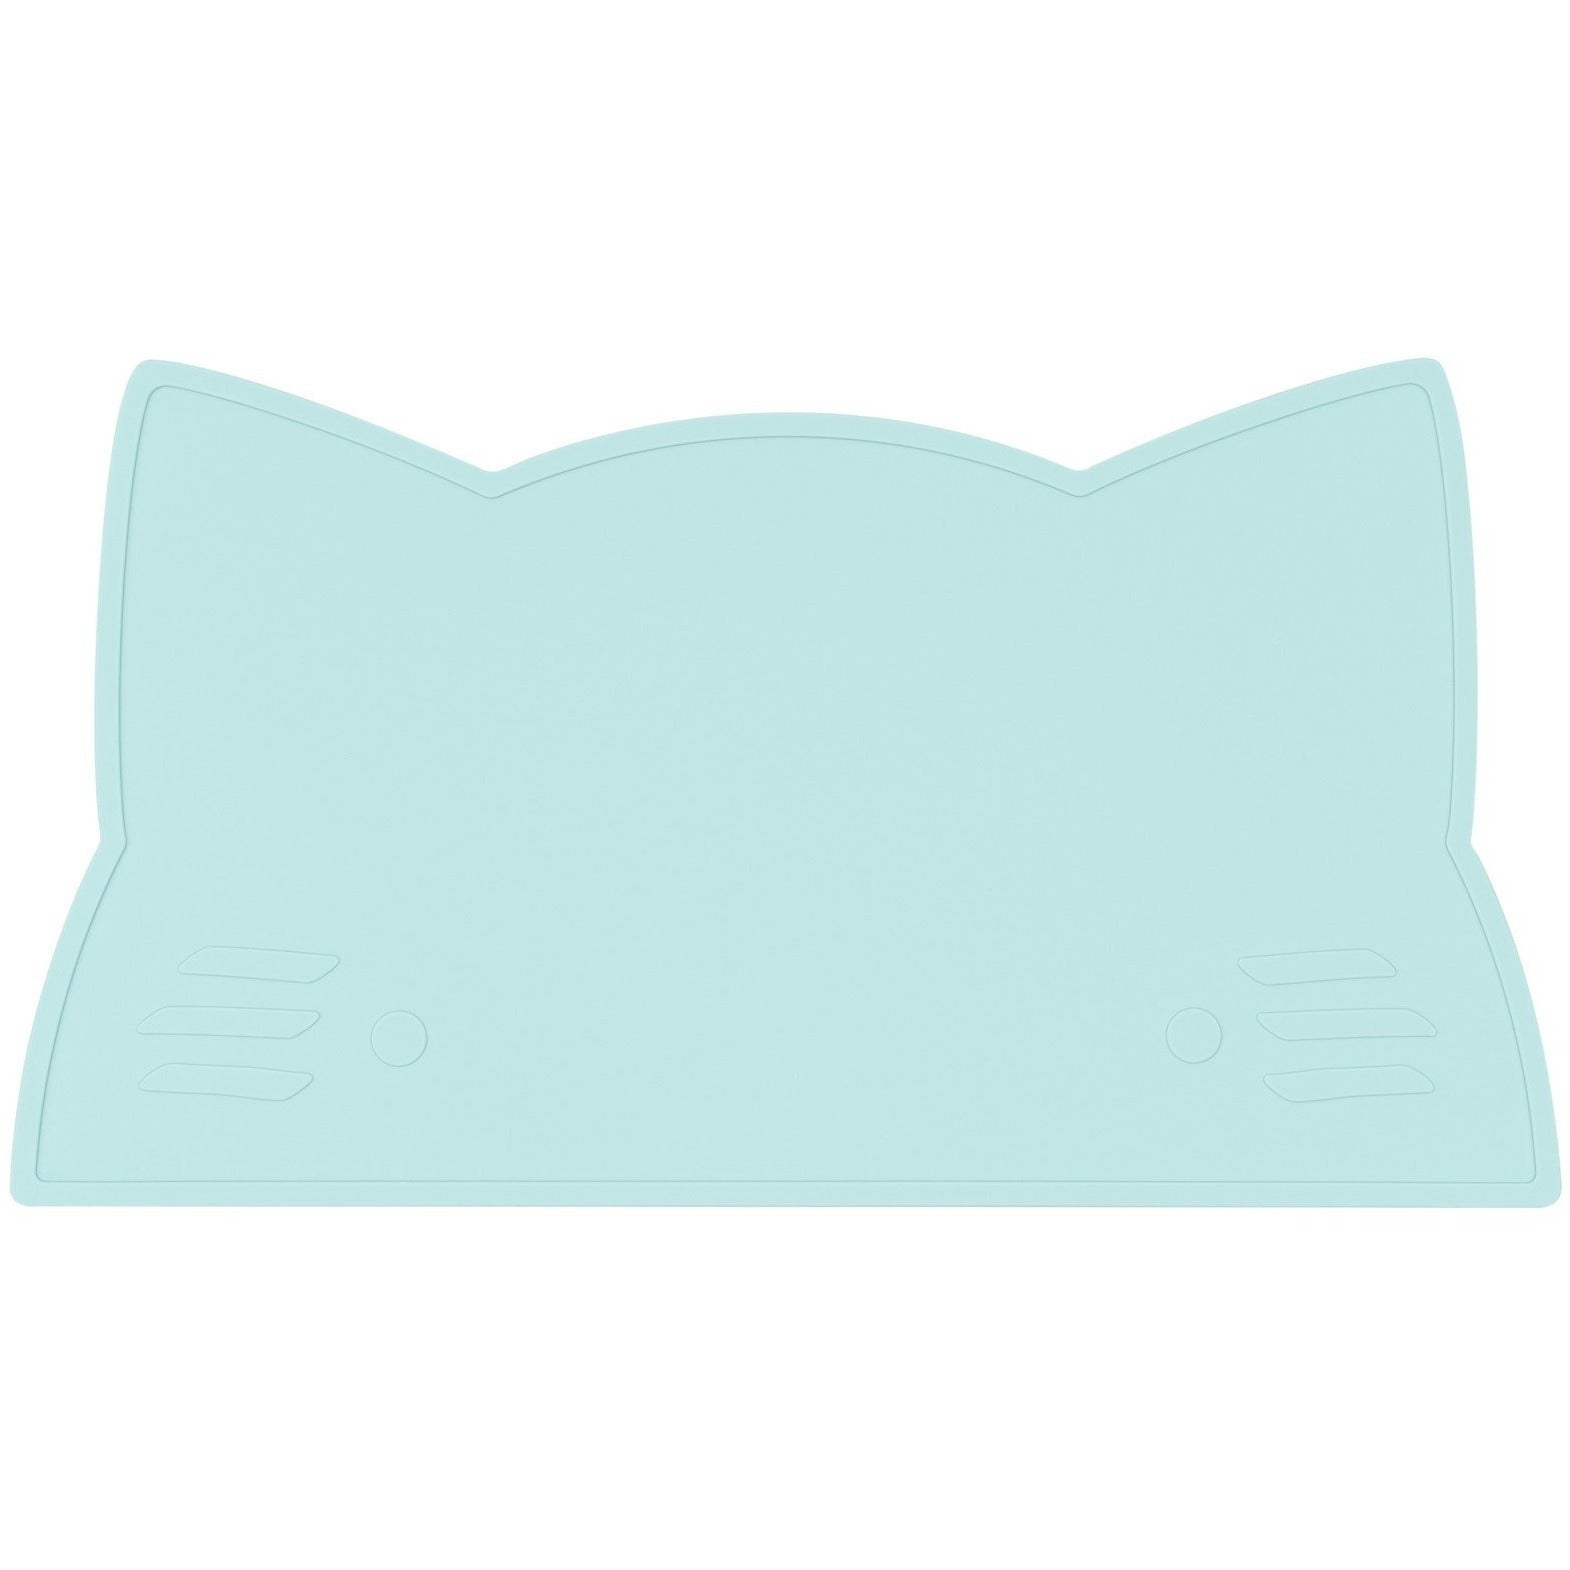 We Might Be Tiny Cat Placemat - Mint